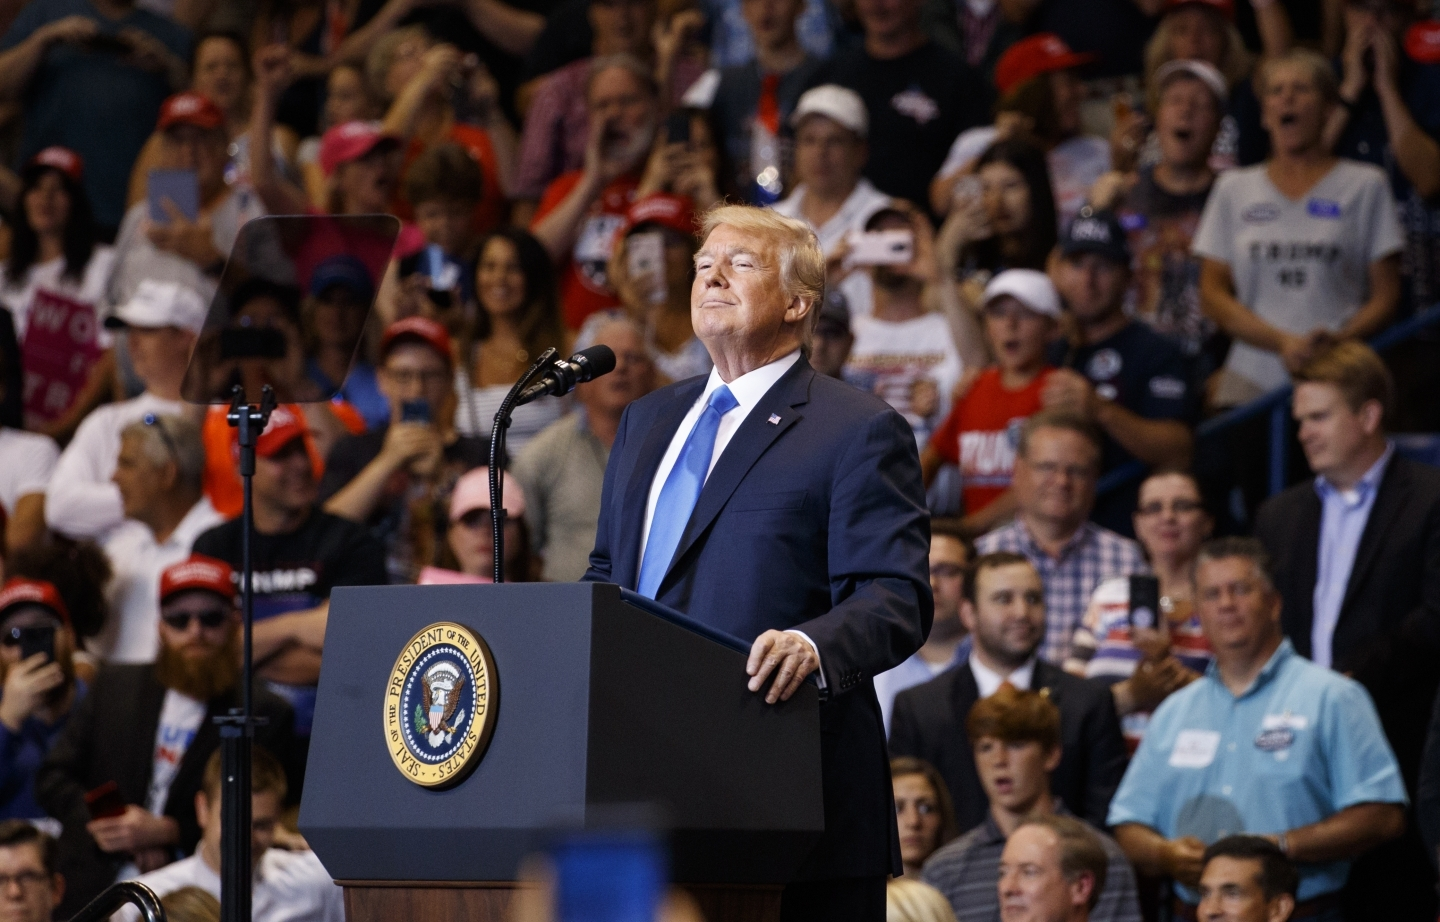 President Donald Trump pauses during a Pennsylvania rally on August 2, 2018. (AP Photo/Carolyn Kaster)